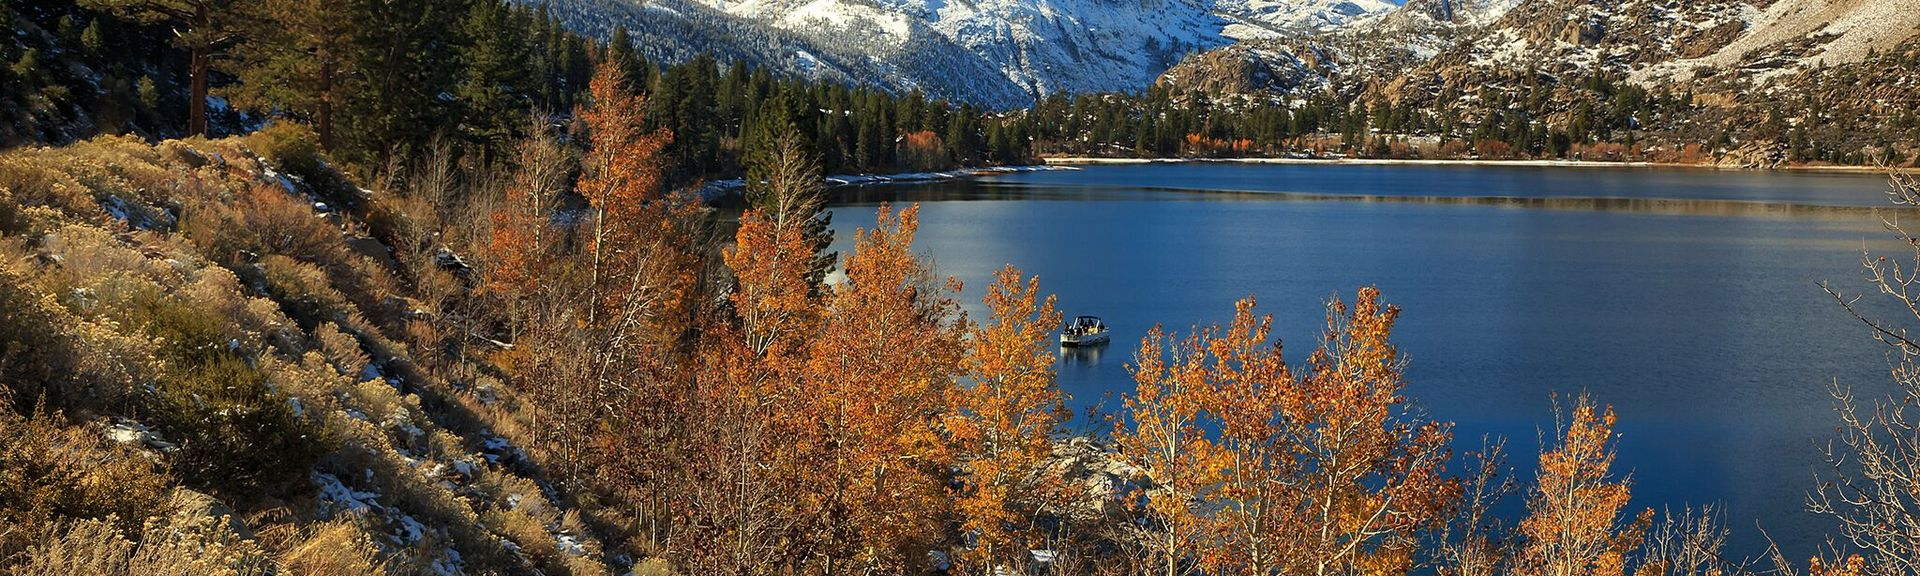 June Lake, California, United States of America